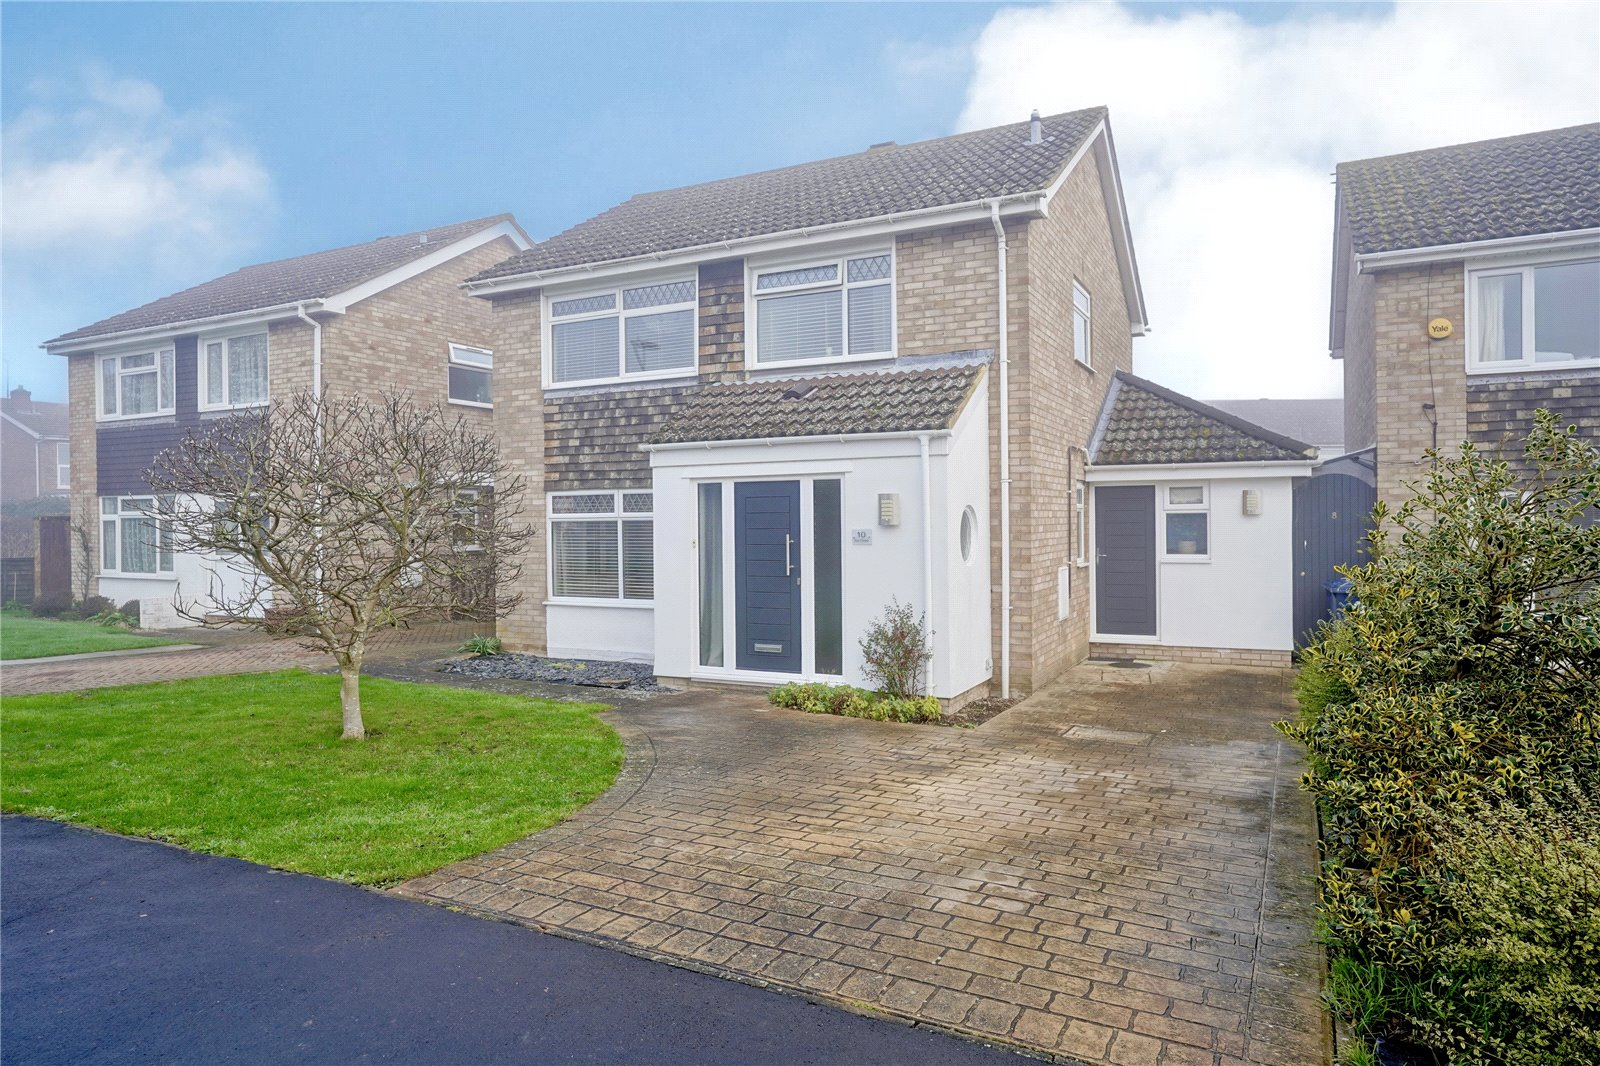 4 bed house for sale in St. Ives, PE27 6SU, PE27